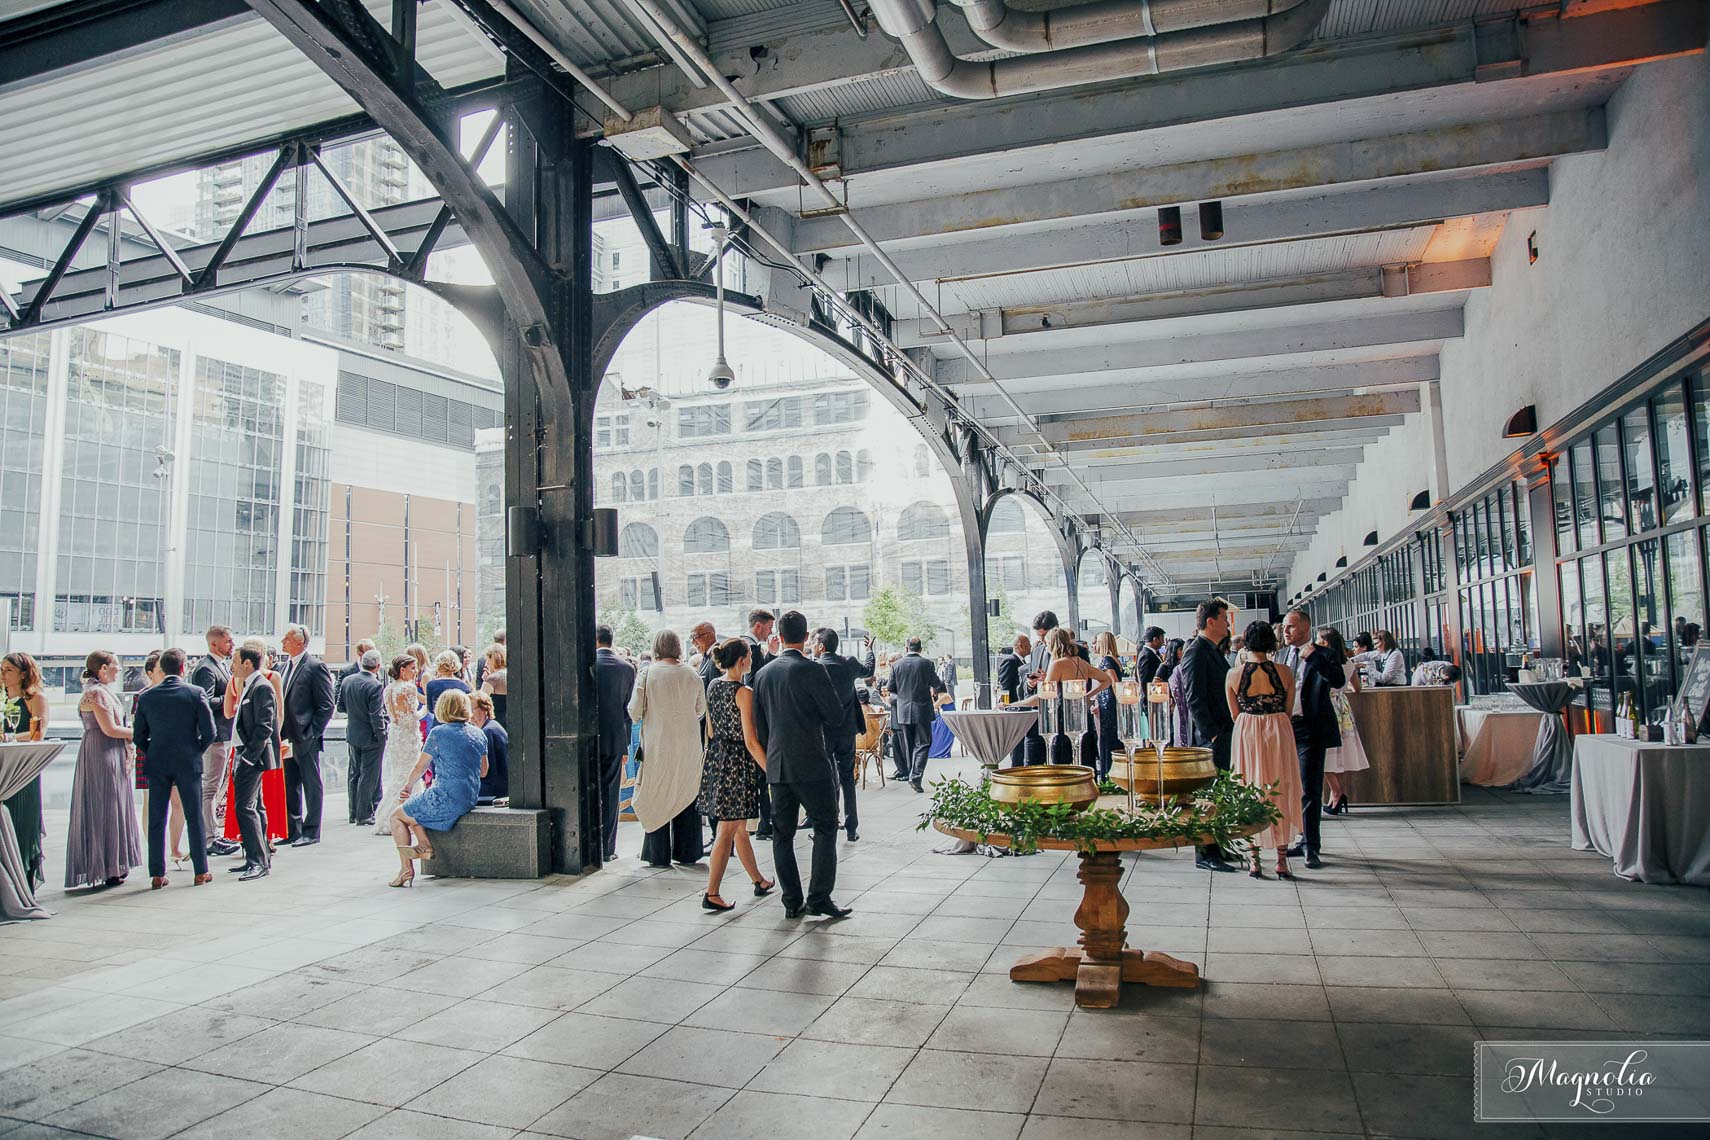 Wedding Reception Photographer Toronto Ontario | Magnolia Studio Photography